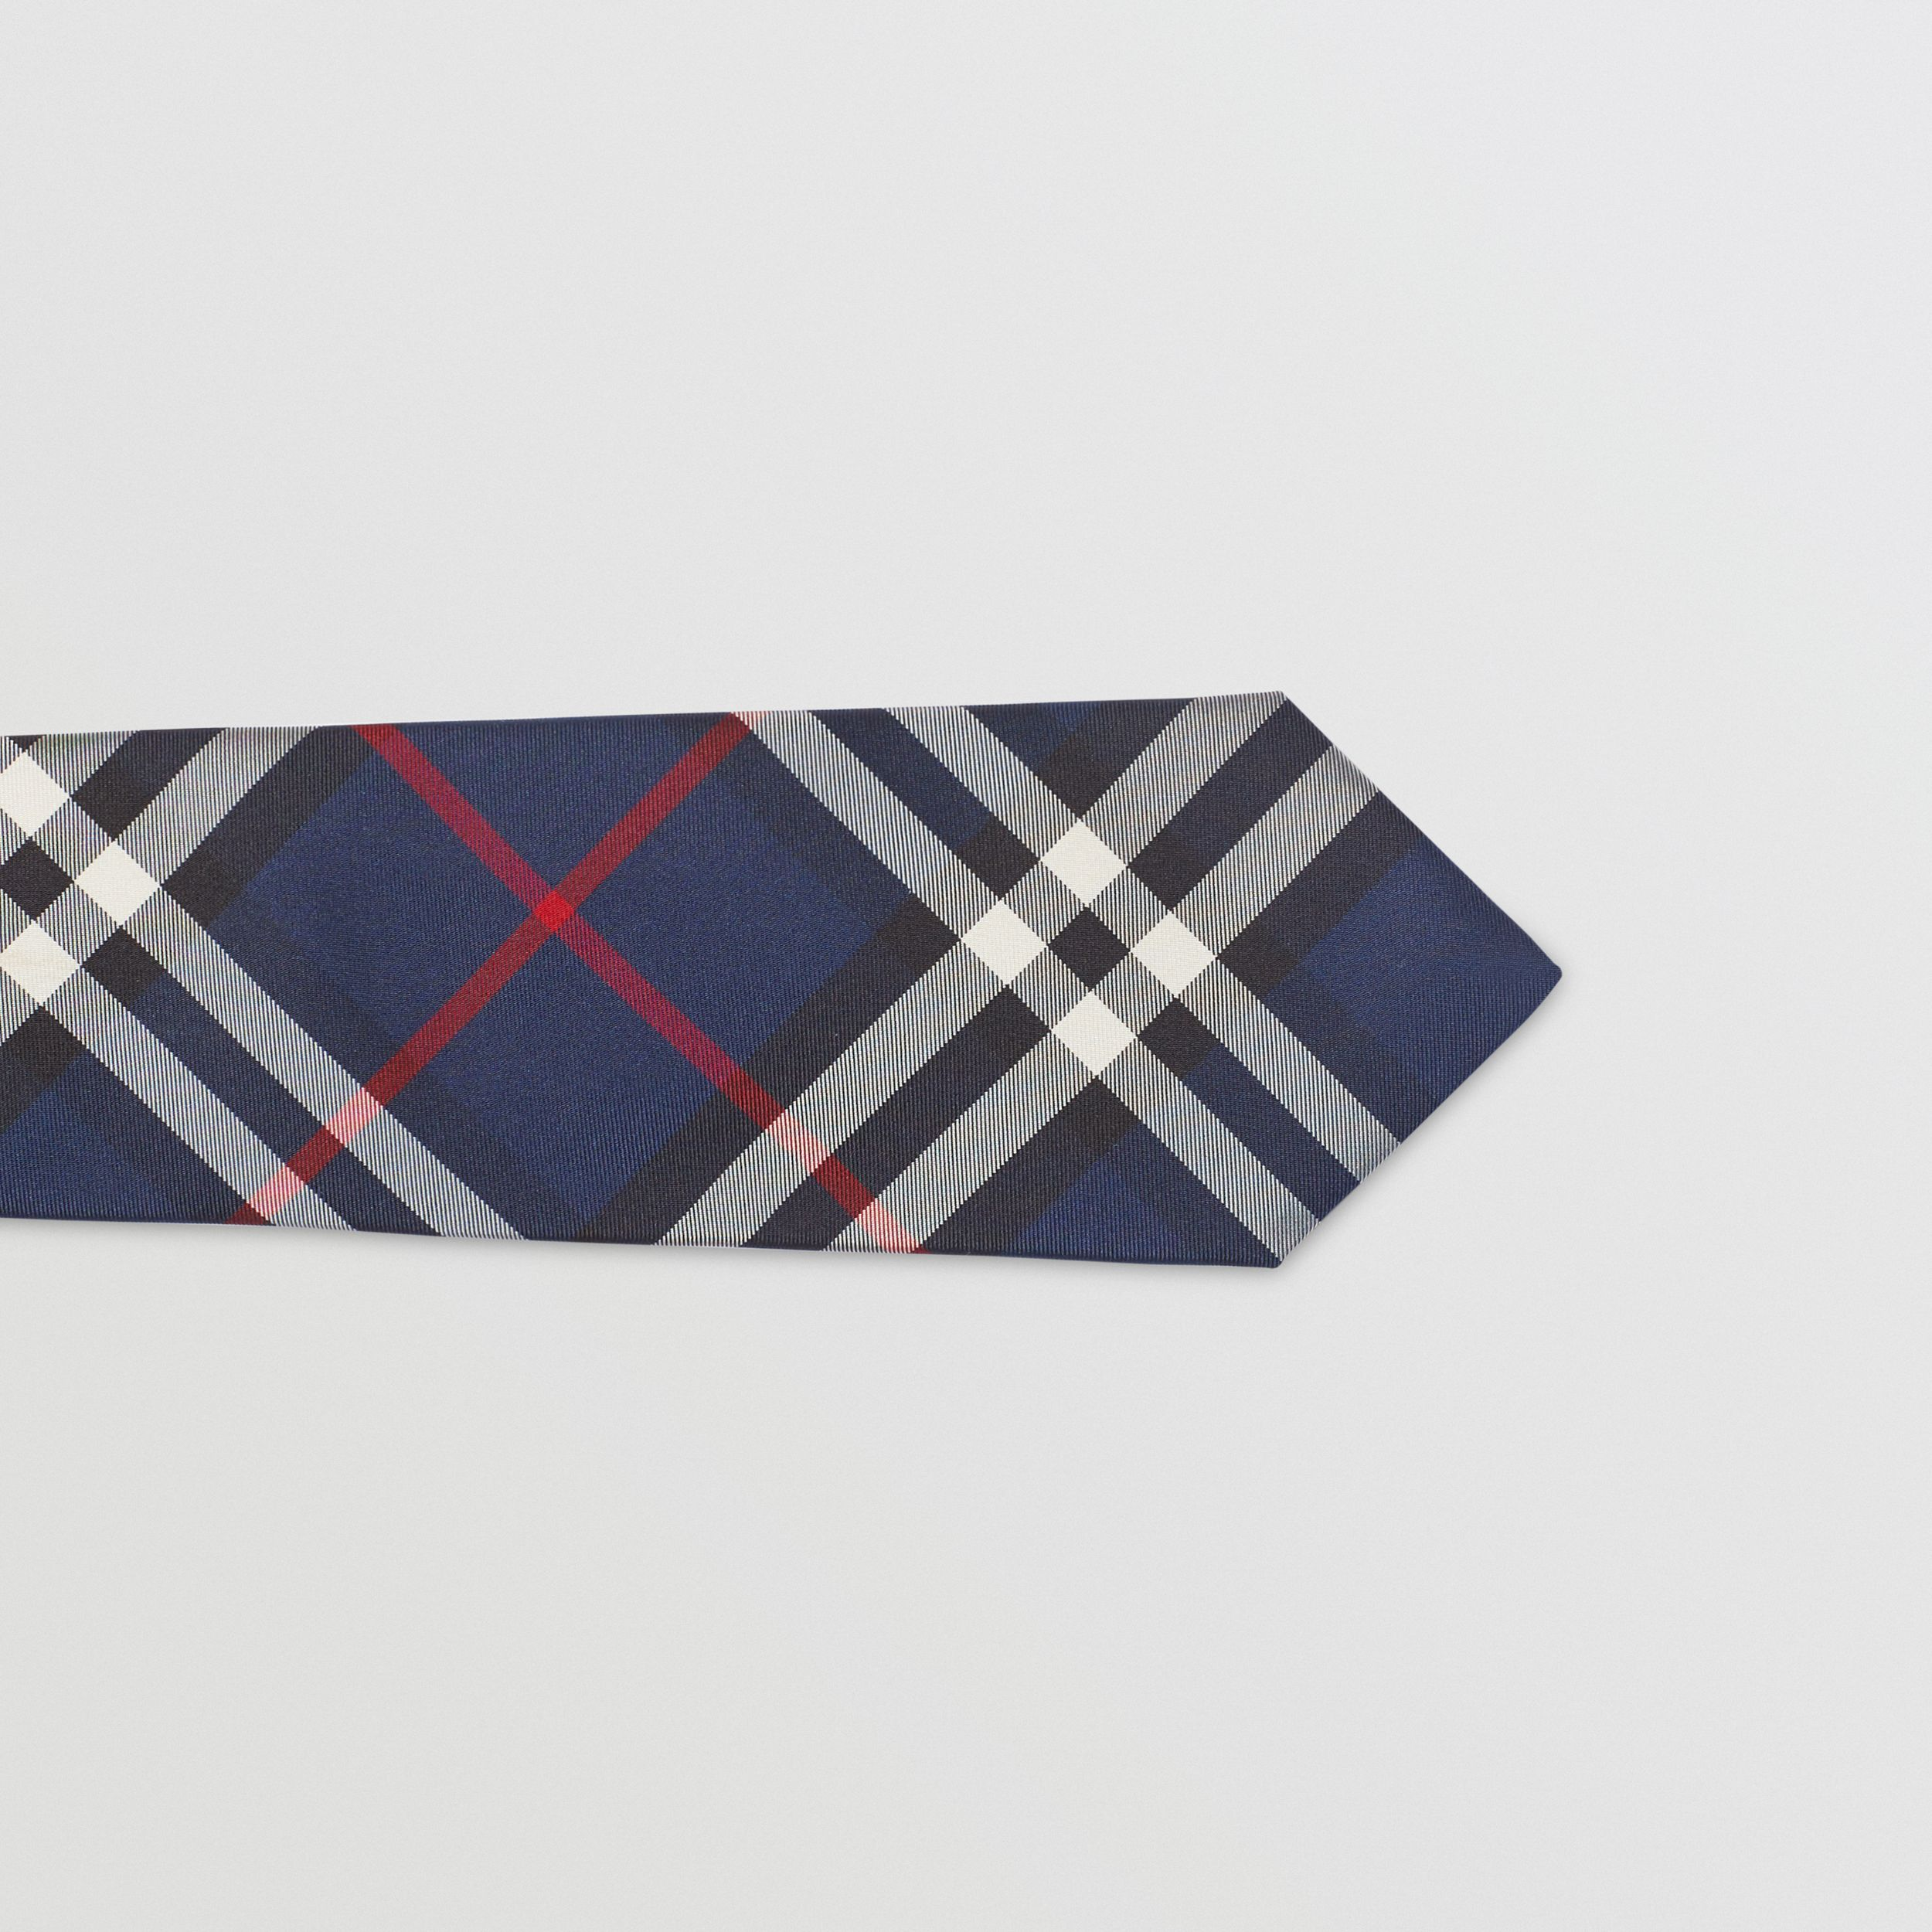 Modern Cut Vintage Check Silk Tie in Navy - Men | Burberry - 2